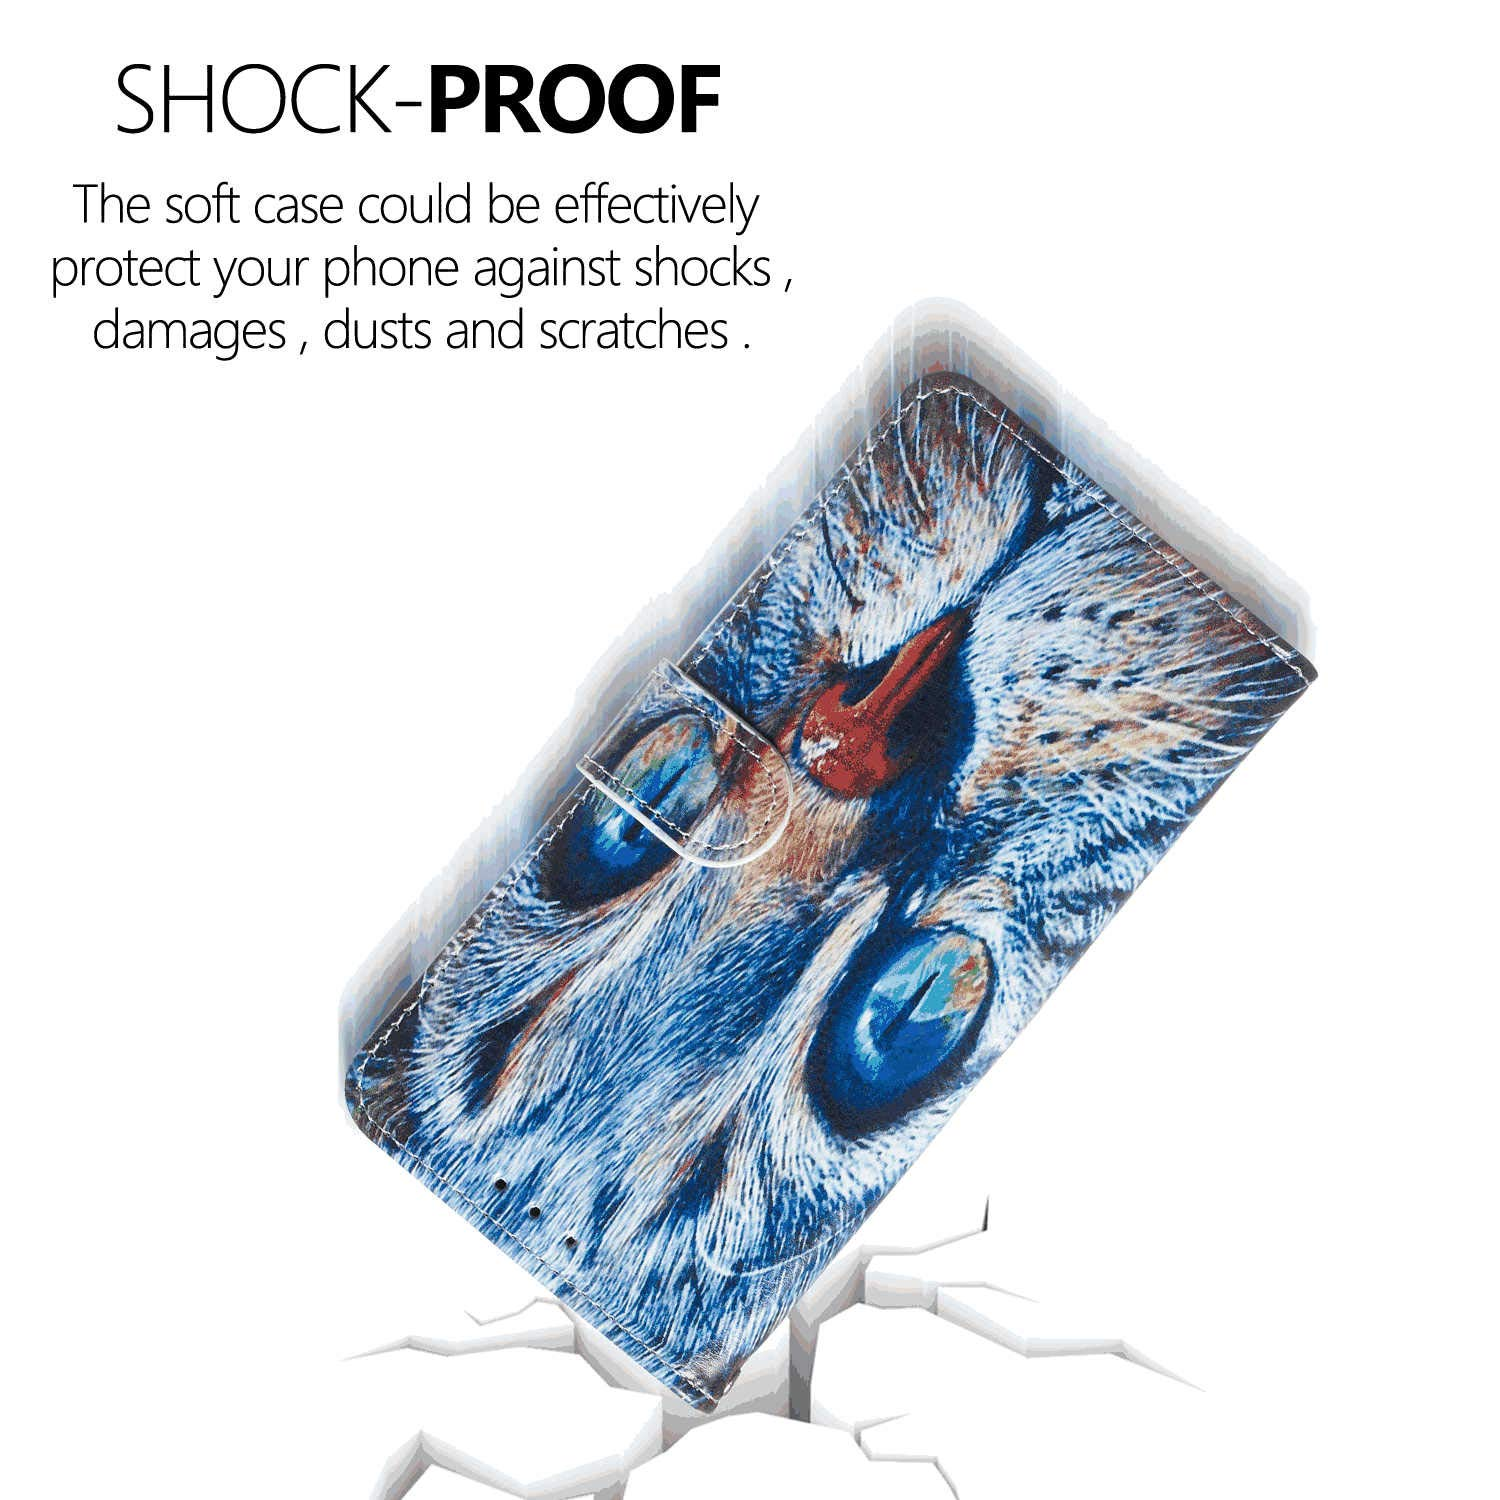 Samsung Galaxy A50 Flip Case Cover for Samsung Galaxy A50 Leather Extra-Shockproof Business Mobile Phone case Card Holders Kickstand with Free Waterproof-Bag Elegant